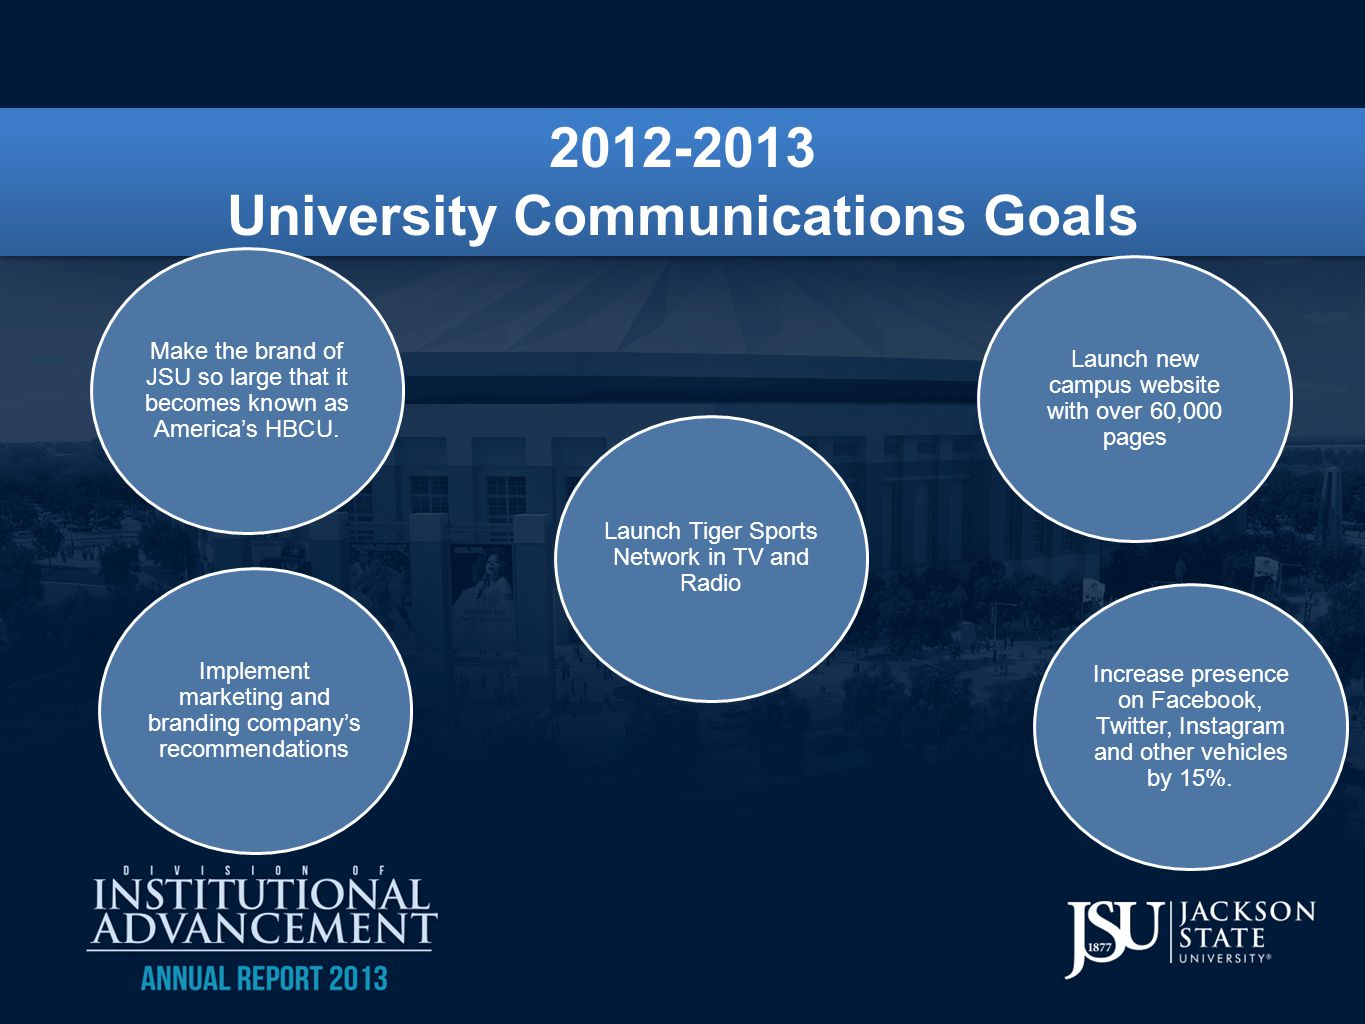 2012-2013 University Communications Goals 2012-2013 University Communications Goals Launch Tiger Sports Network in TV and Radio Increase presence on Facebook, Twitter, Instagram and other vehicles by 15%.